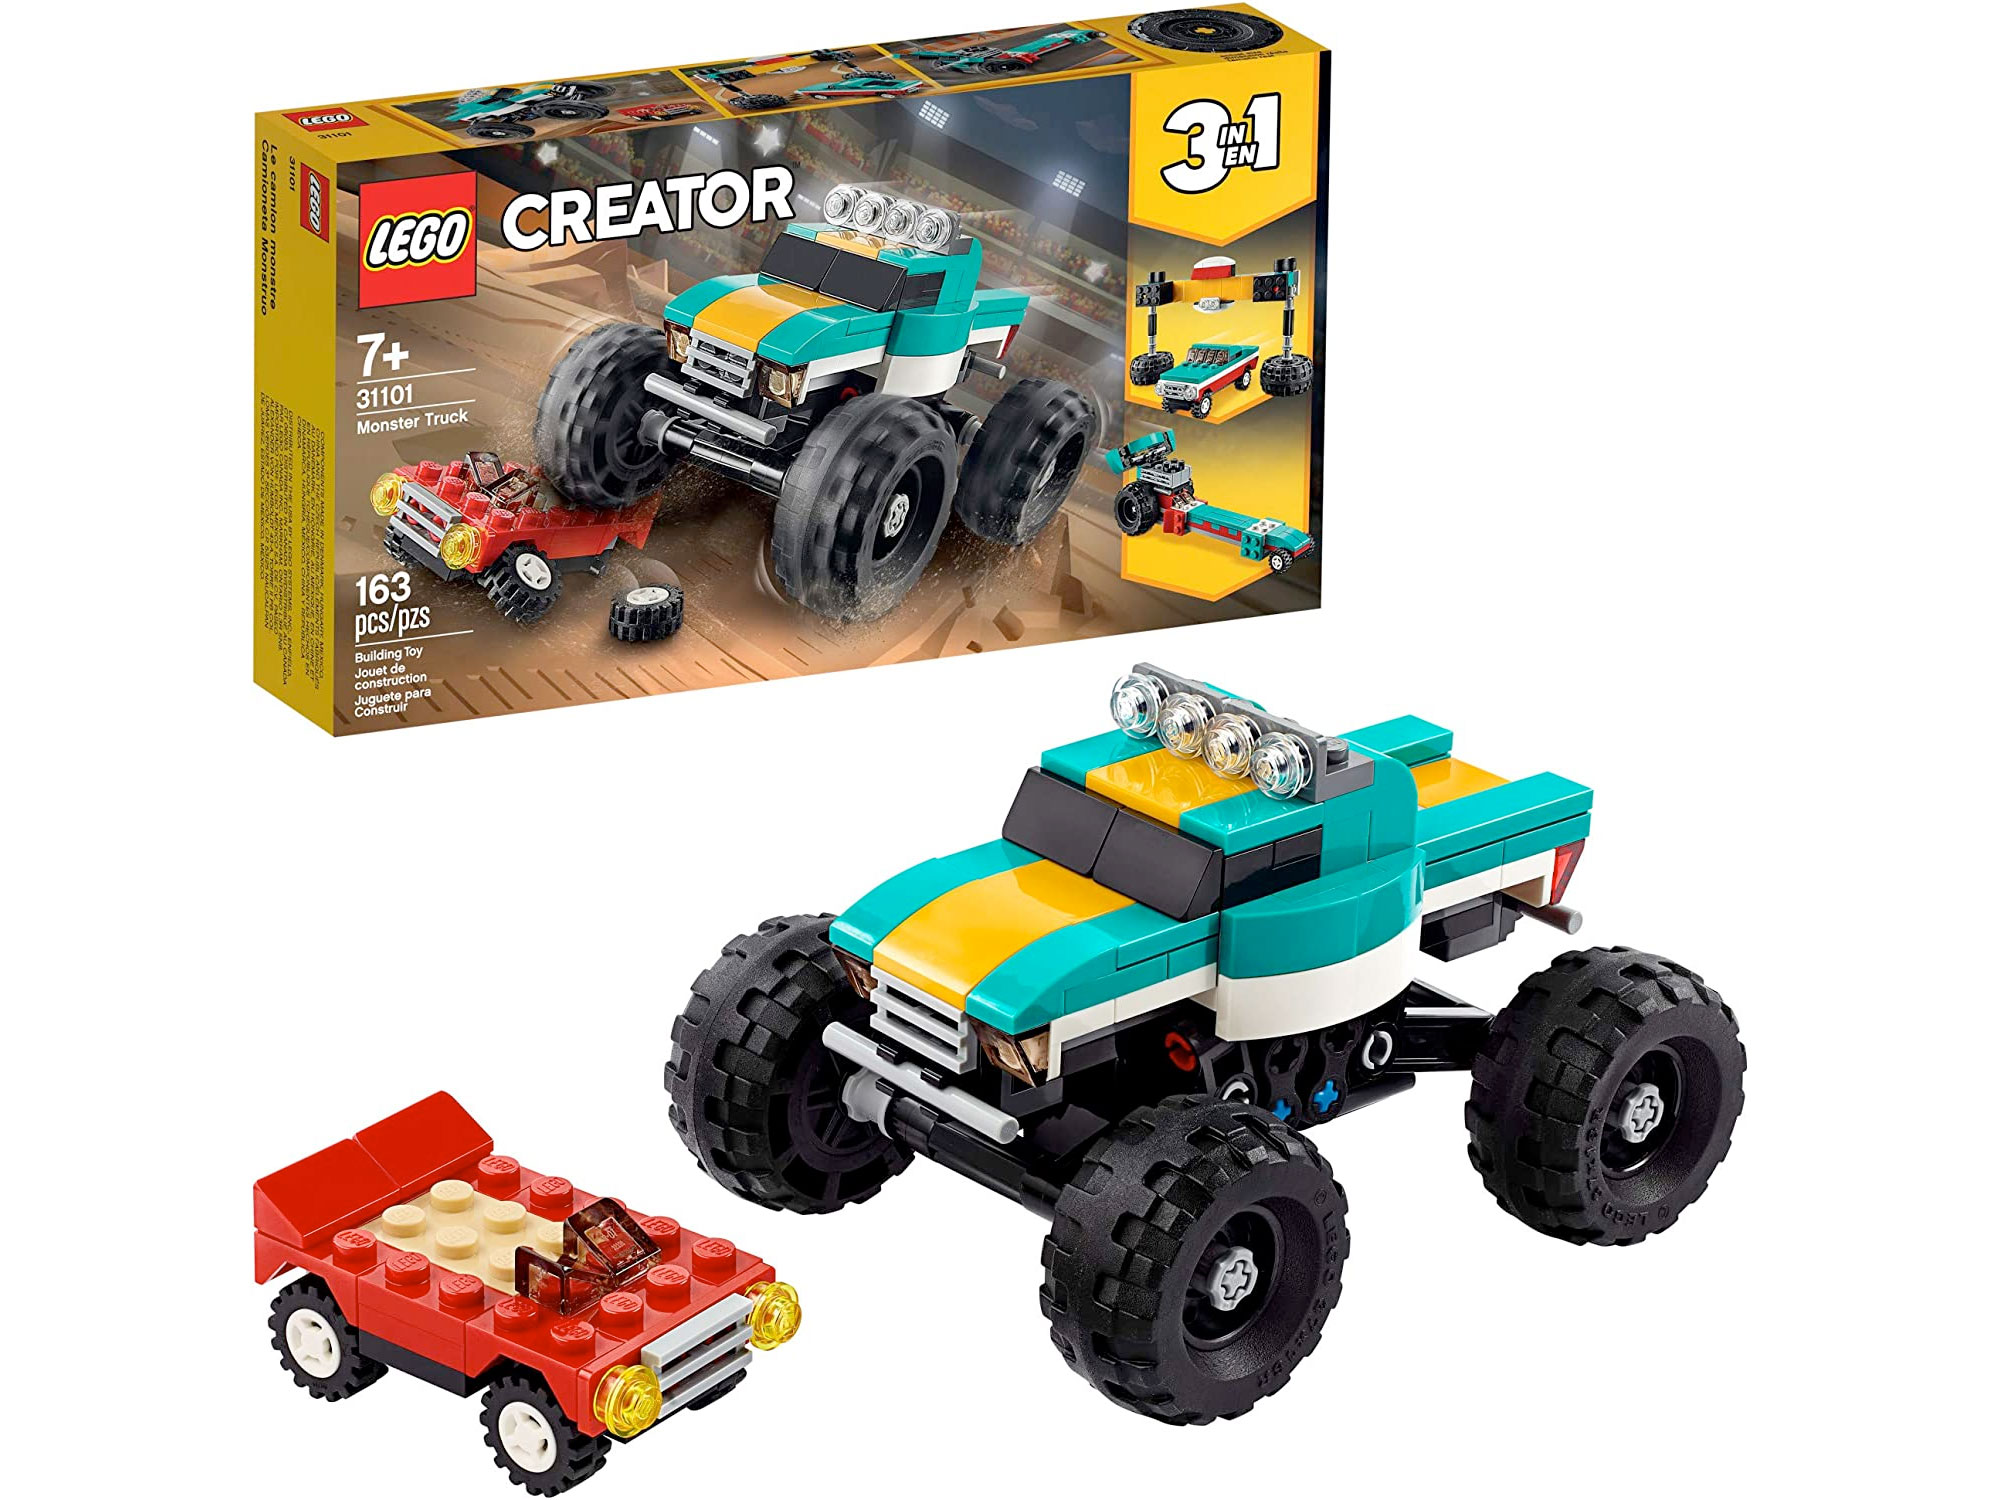 Amazon:LEGO Creator 3in1 Monster Truck Toy 31101(163 pcs)只賣$16.97